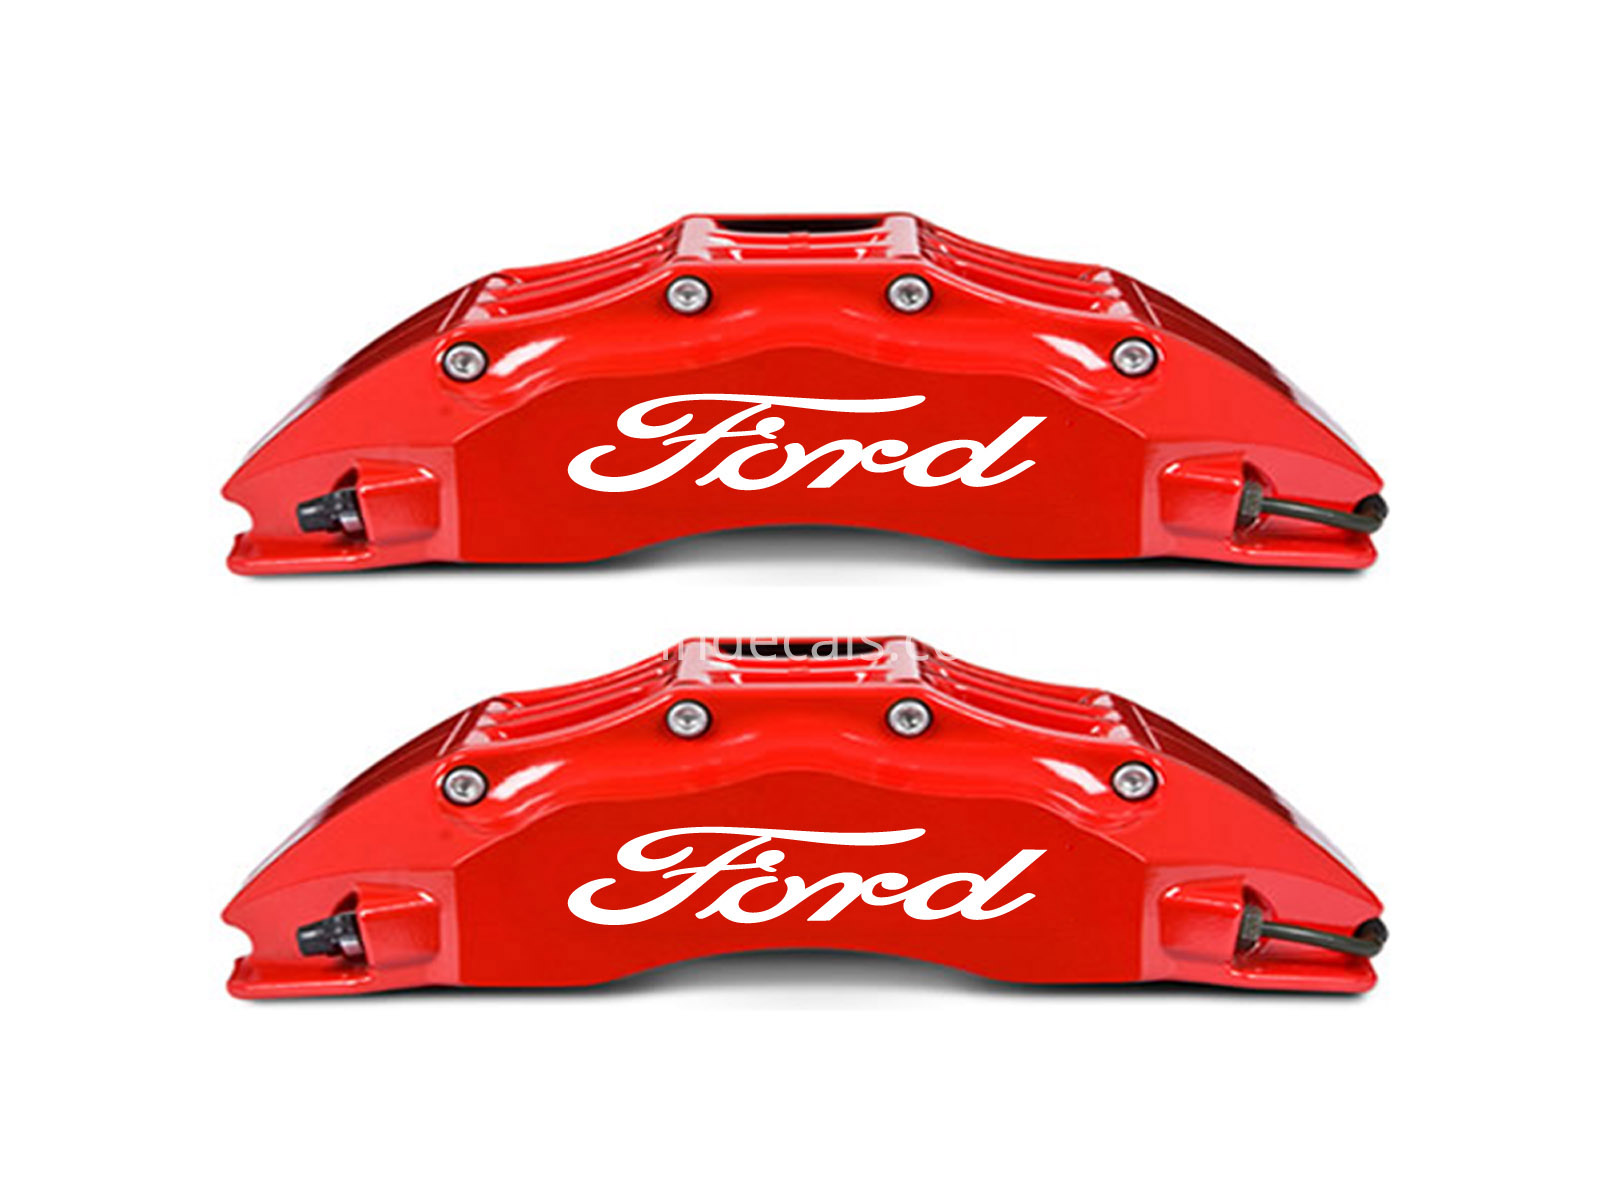 6 x Ford Stickers for Brakes - White